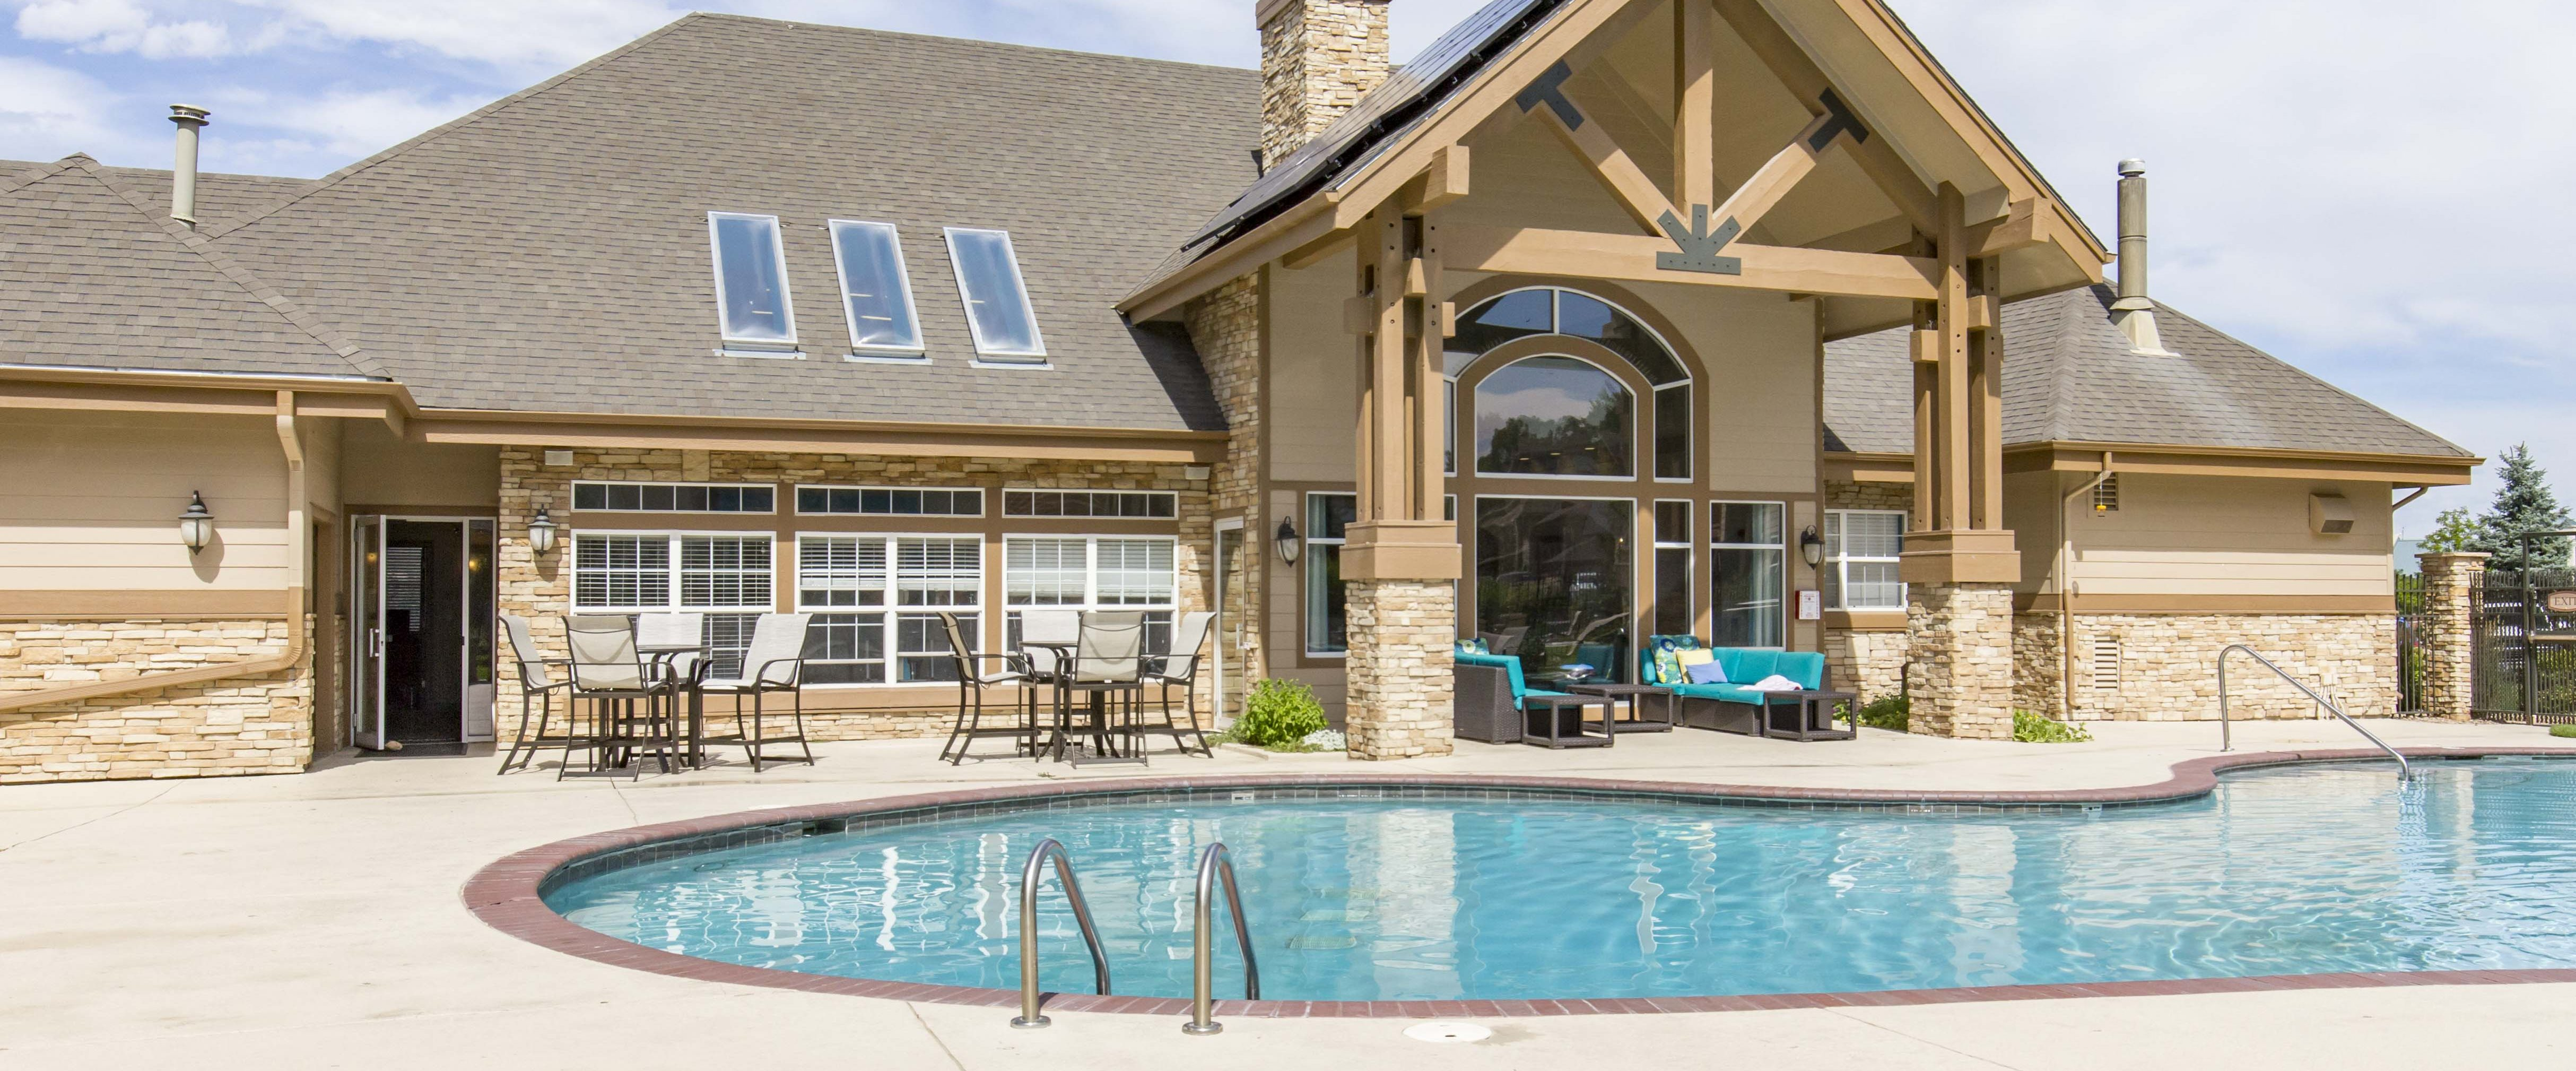 The Village At Legacy Ridge Apartments Apartments In